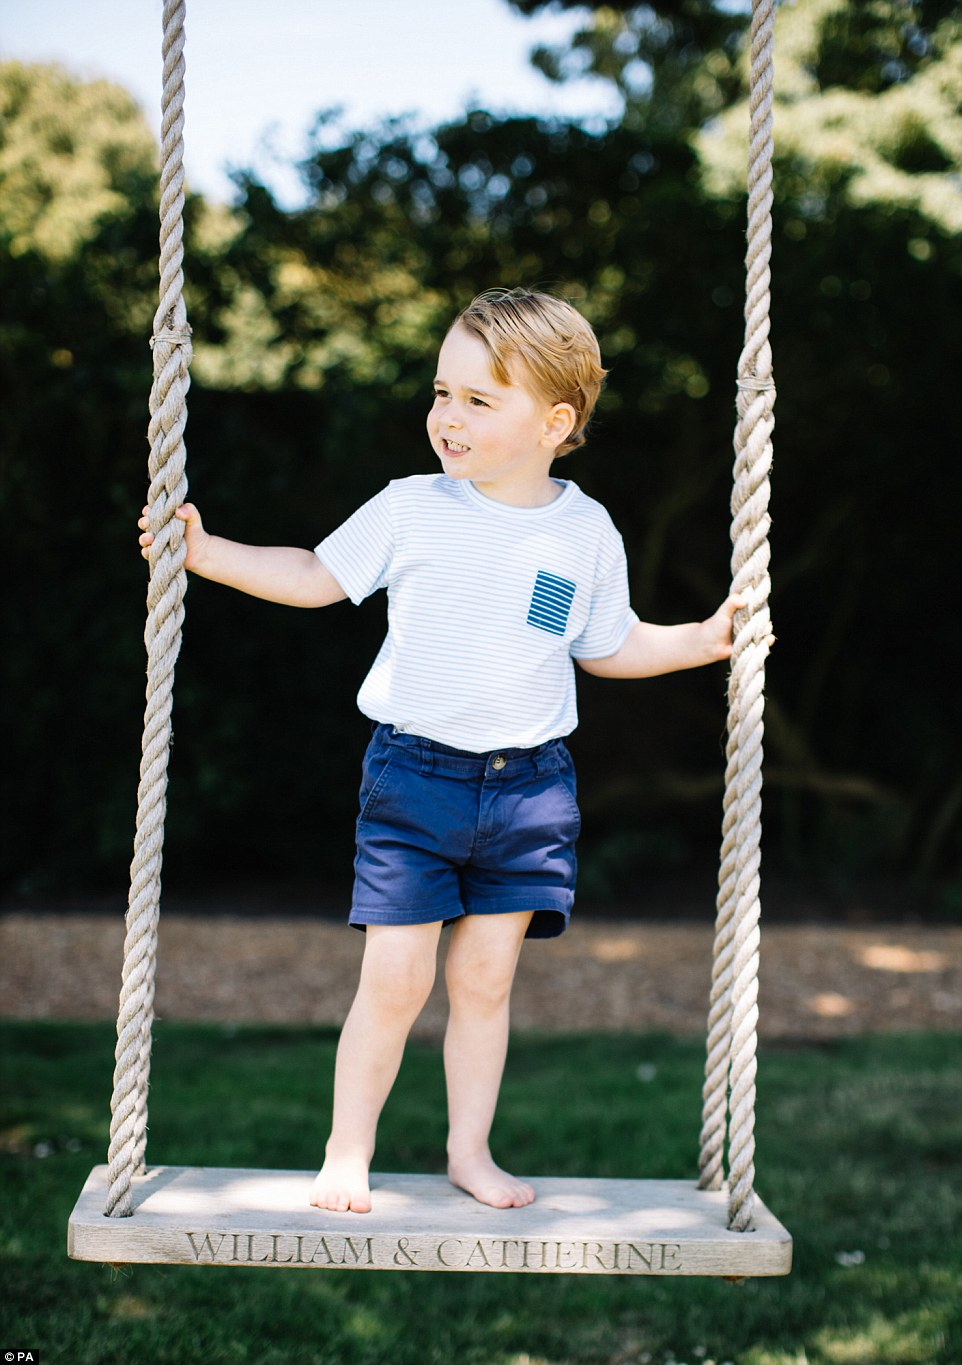 The little prince, third in line to the throne, can be seen in two shots playing on a swing in casual shorts and a T-shirt at his parents' country home that is inscribed with their names, William and Catherine. It is believed to have been a wedding gift to the couple